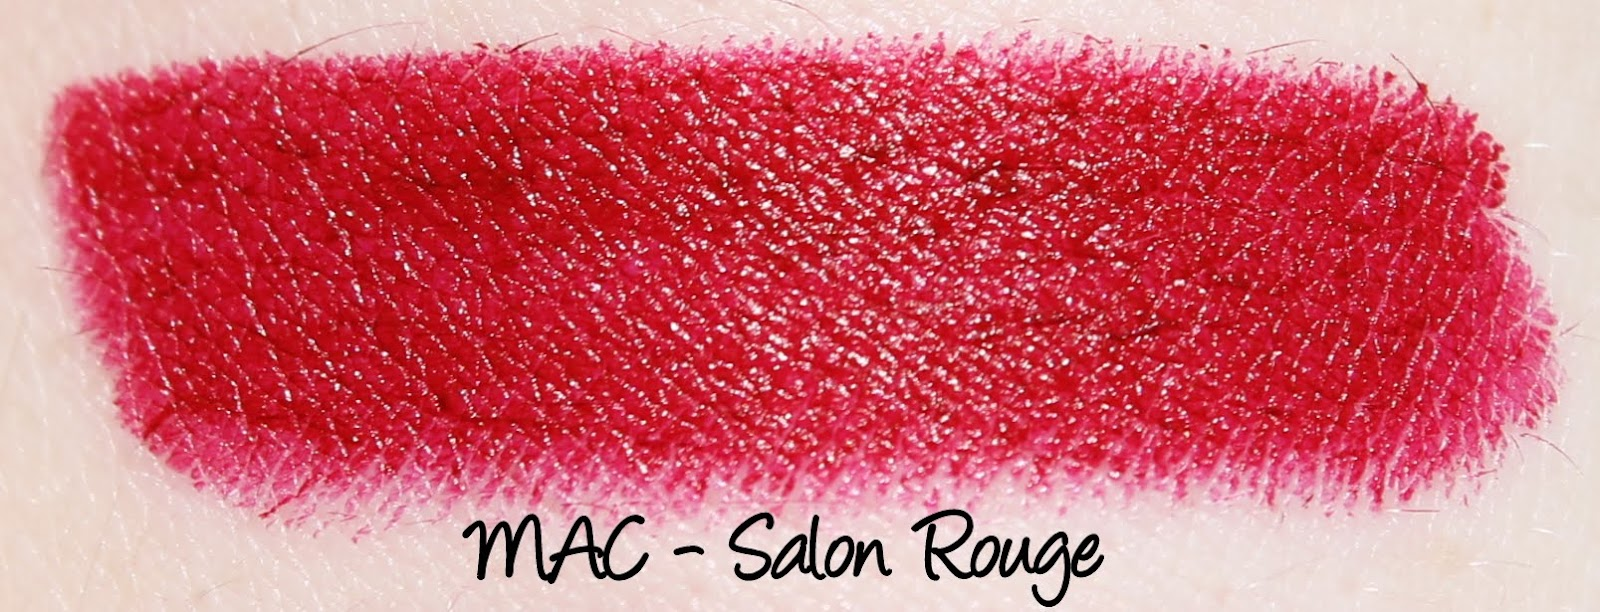 MAC Heirloom Mix Lipsticks - Salon Rouge Swatches & Review